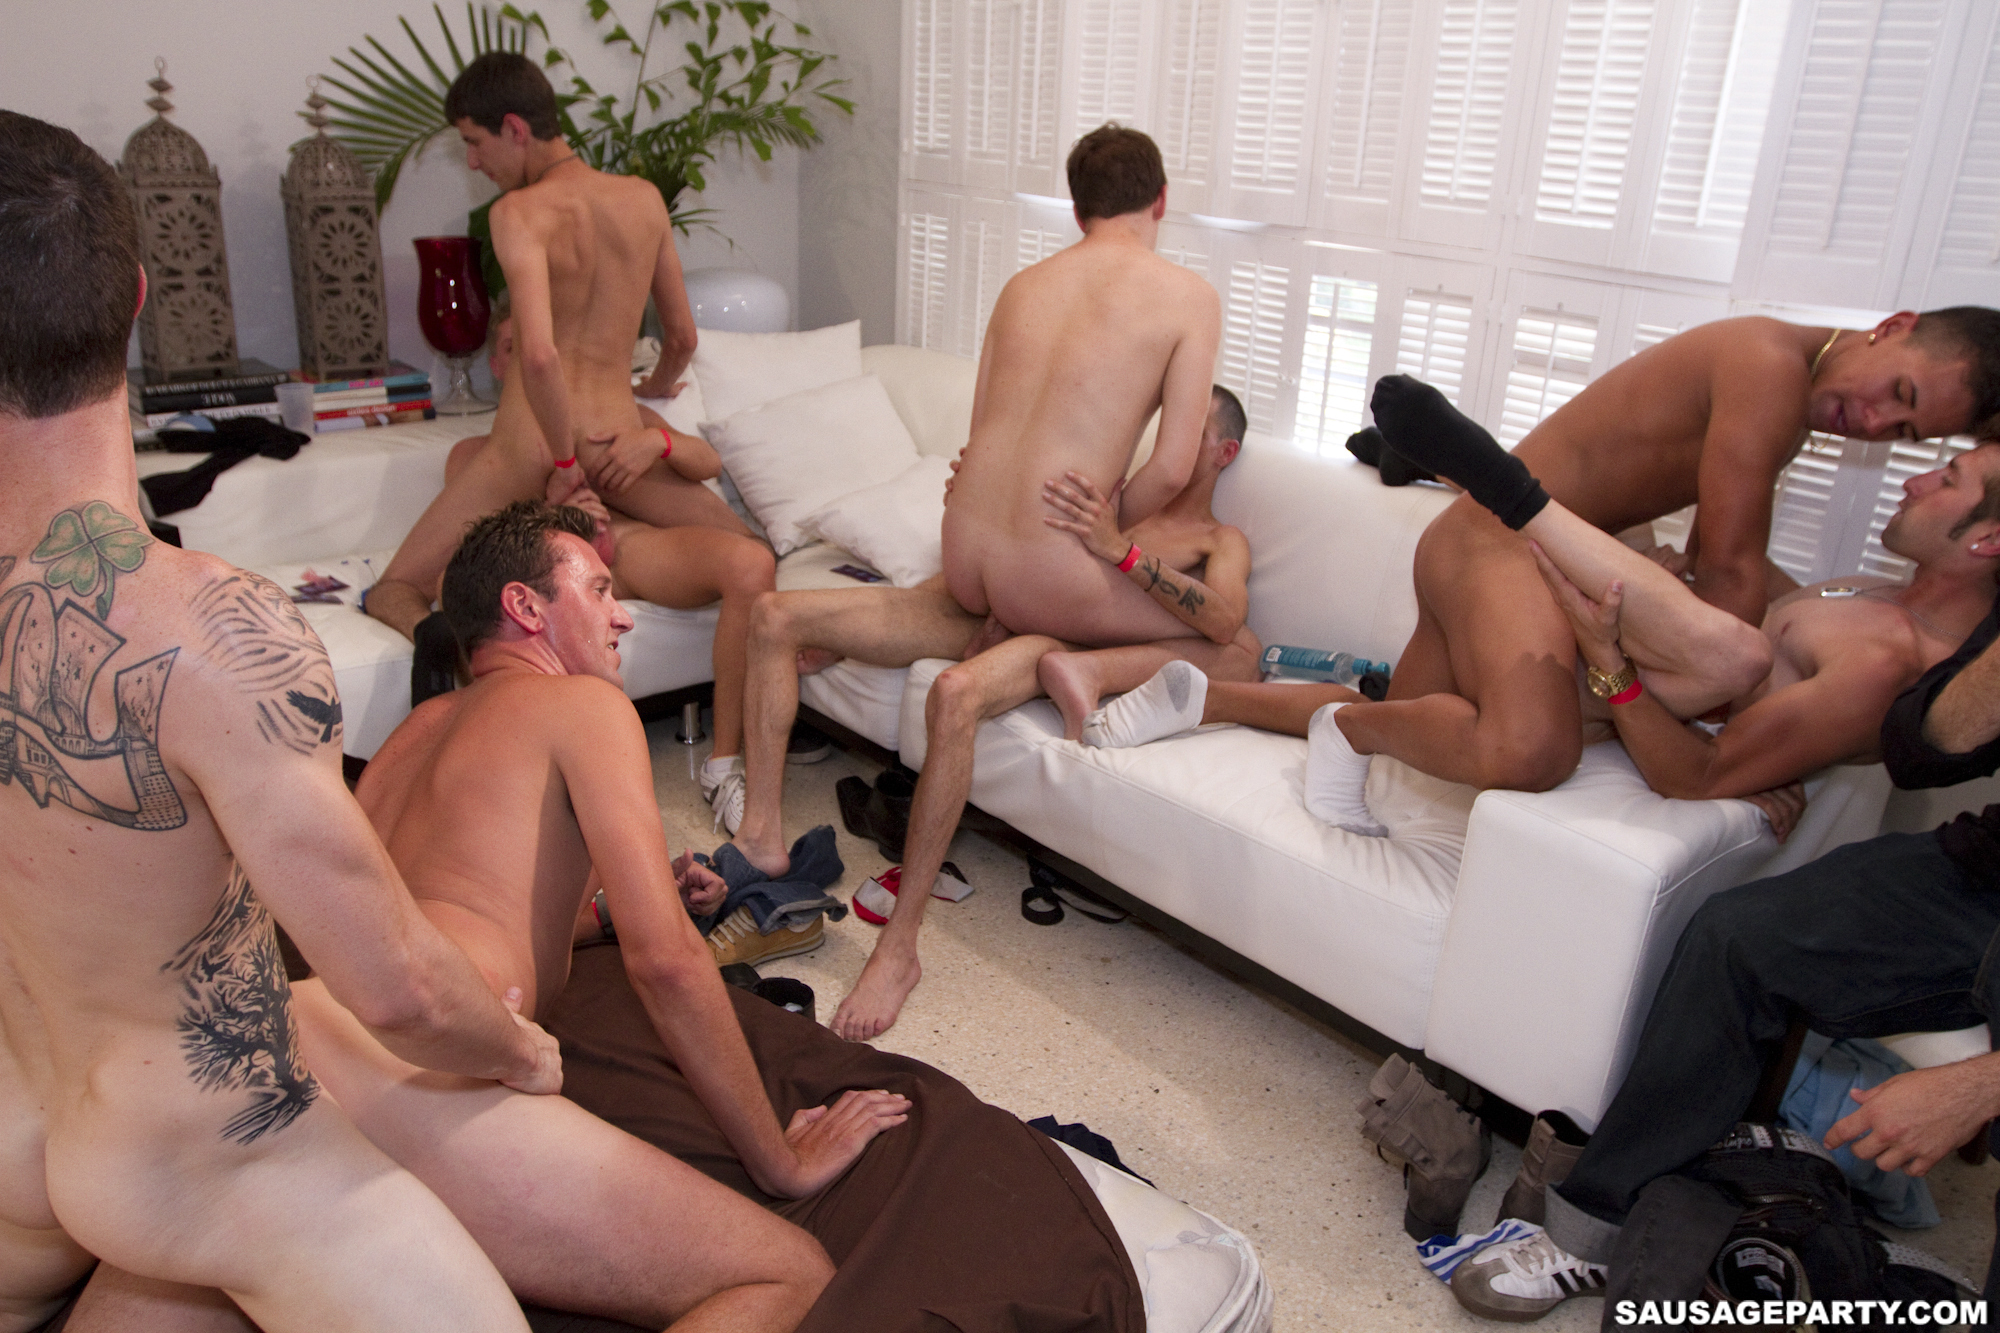 Group of guys end up in duo wanking on cam 8